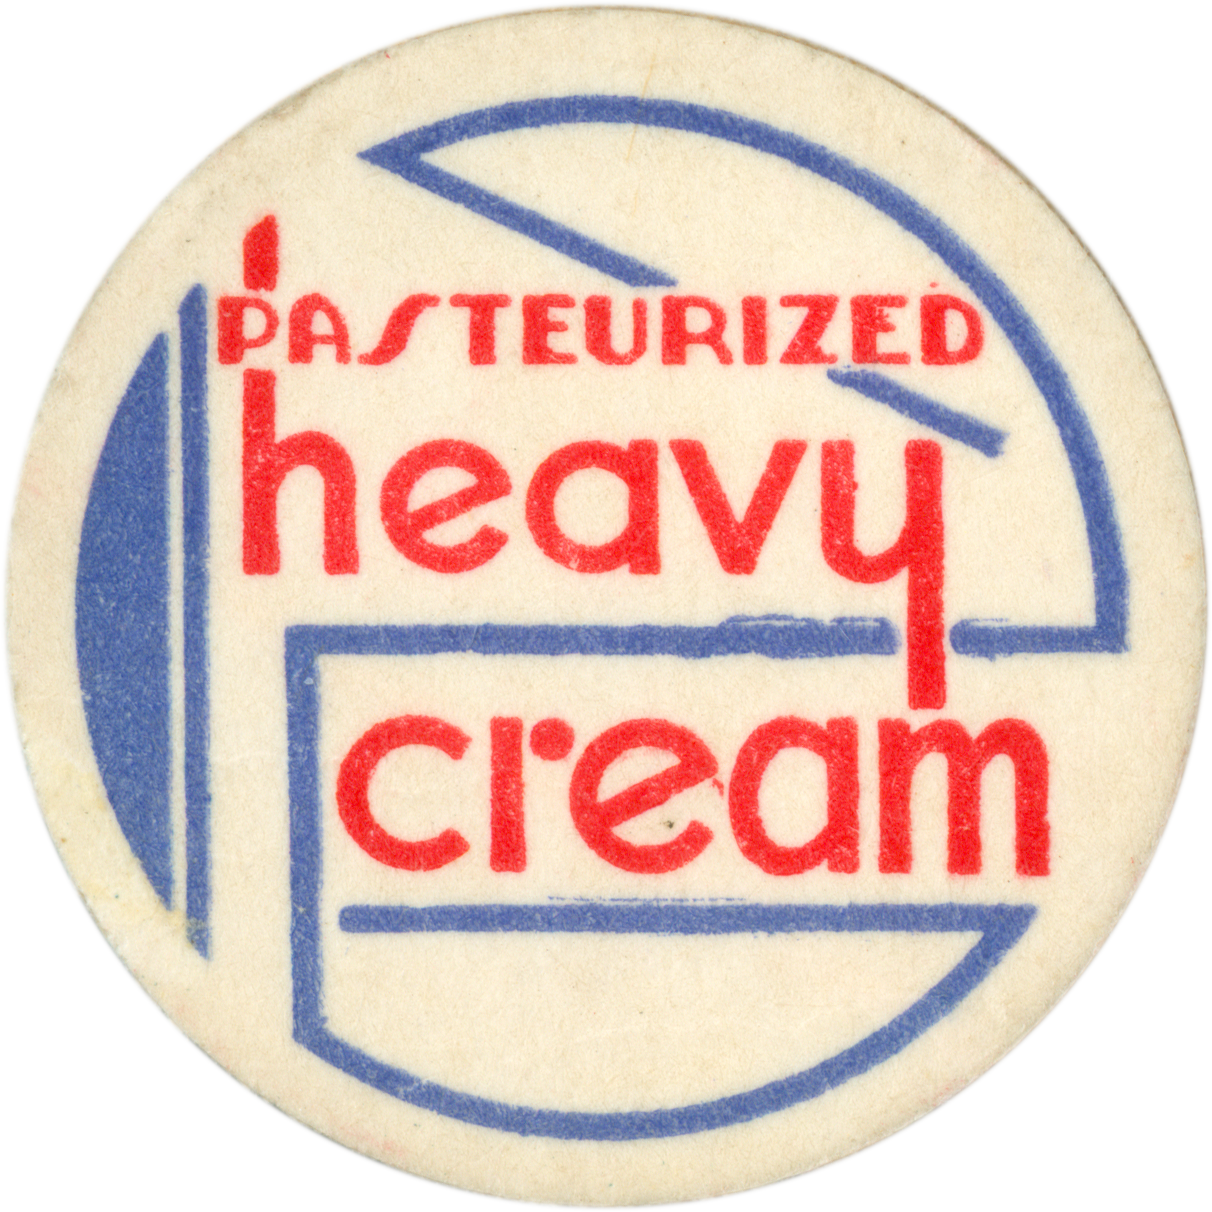 VernacularCircles__0001s_0008_Pasteurized-Heavy-Cream.png